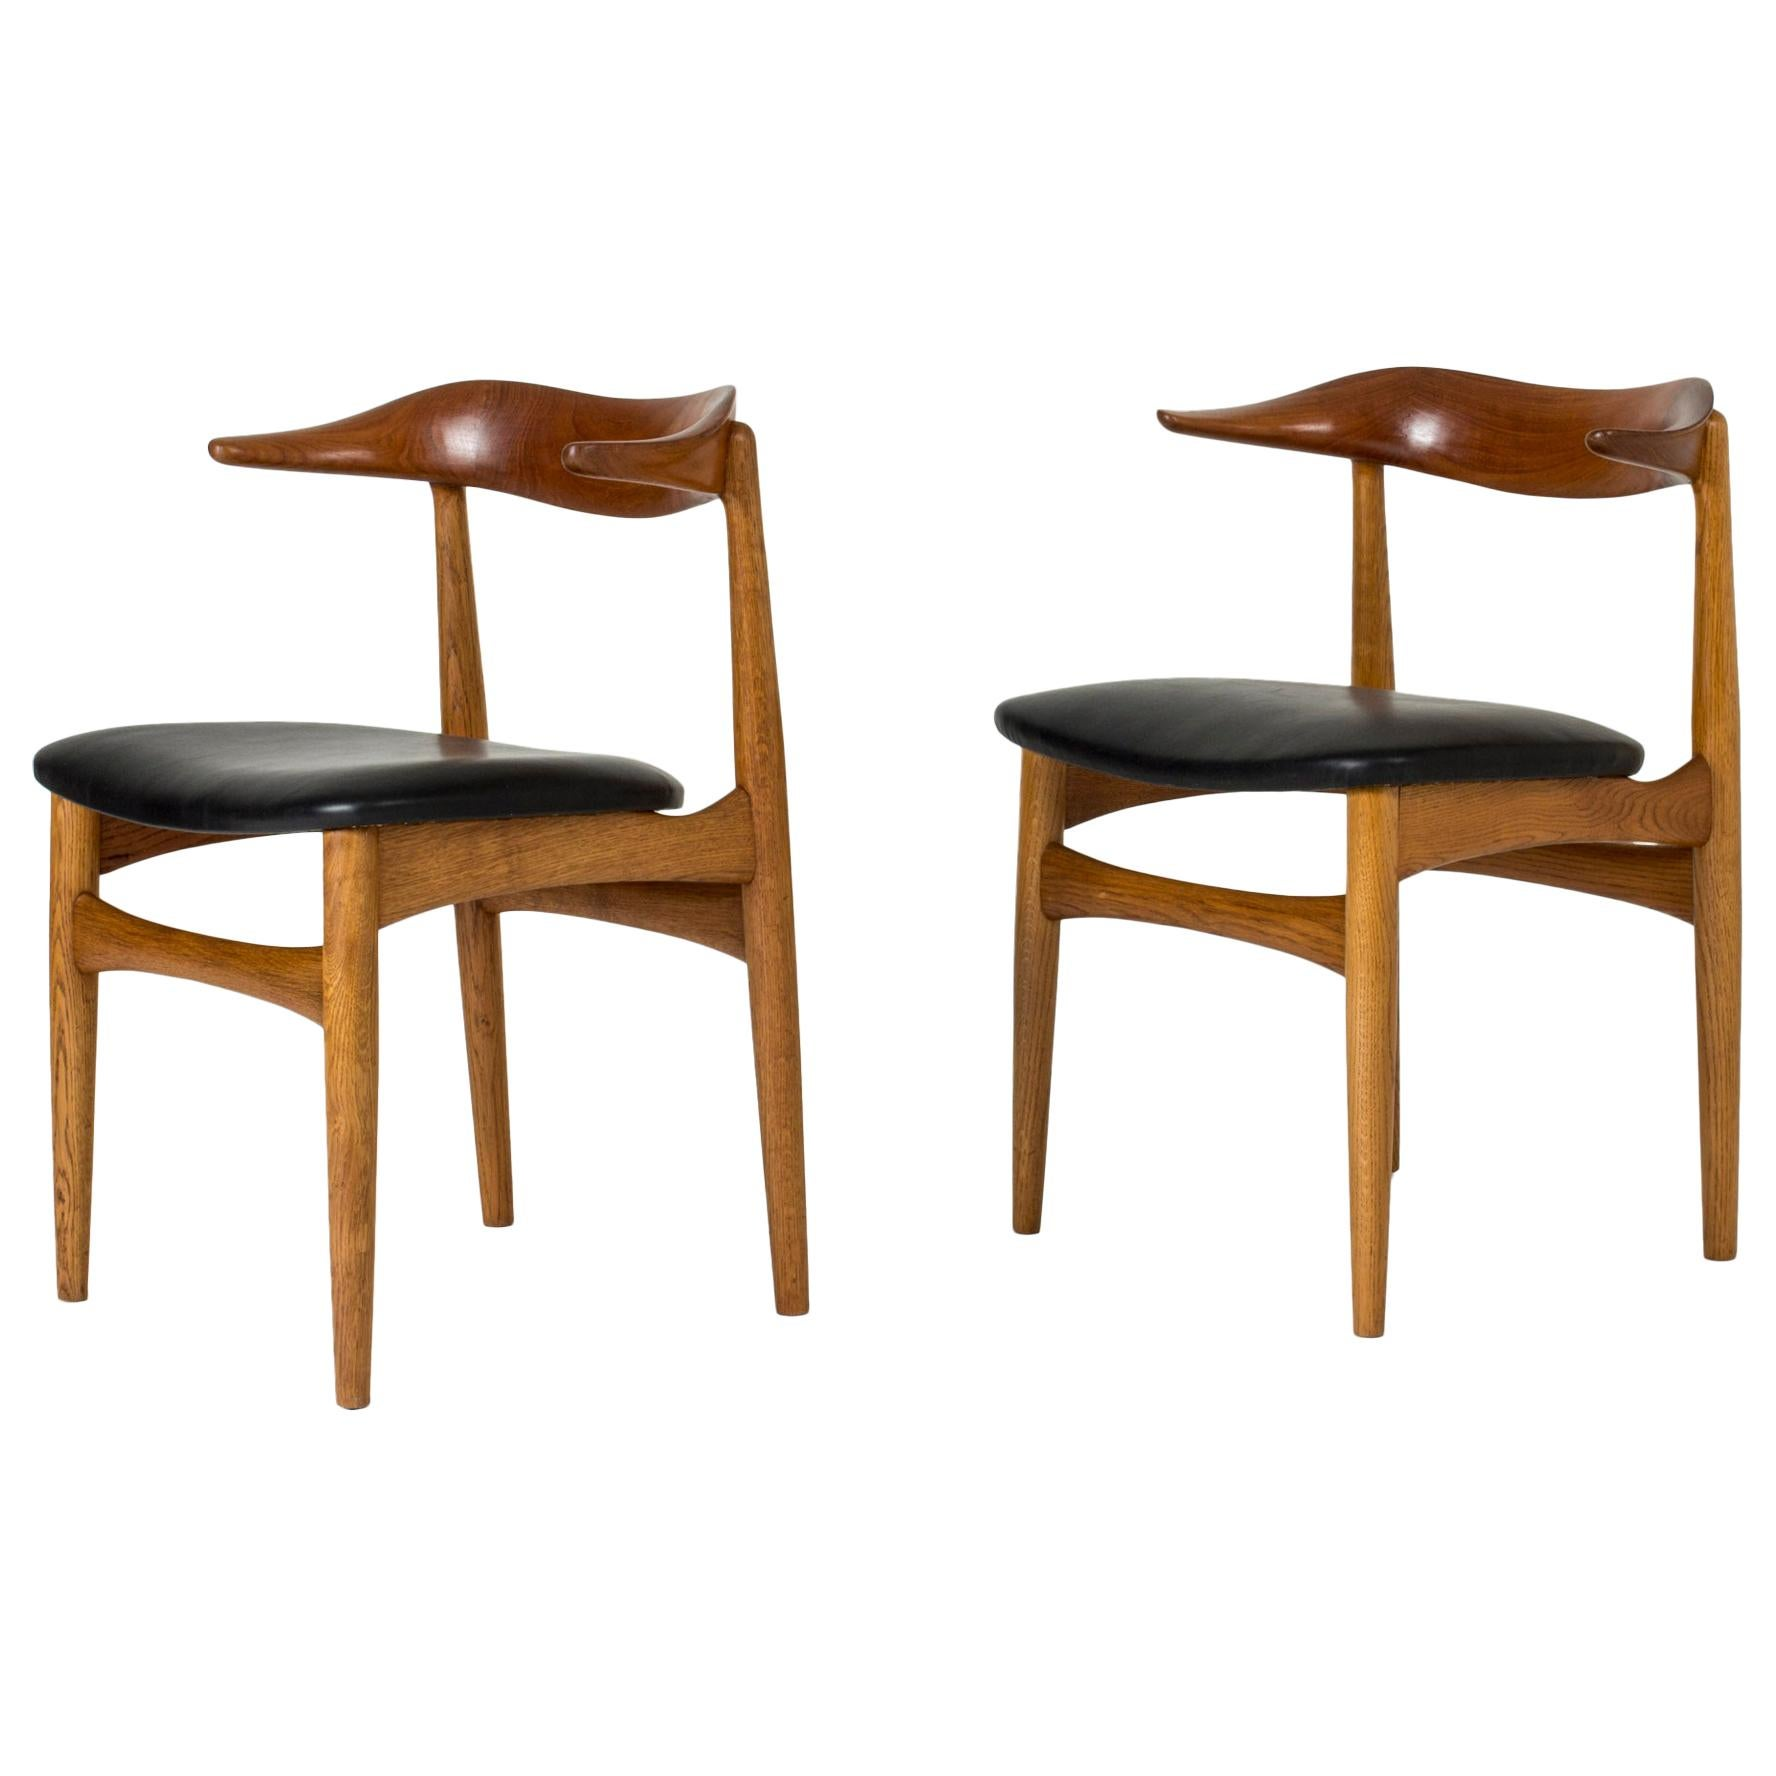 """Pair of """"Cowhorn"""" Chairs by Knud Færch for Slagelse Møbelværk, Denmark, 1950s"""